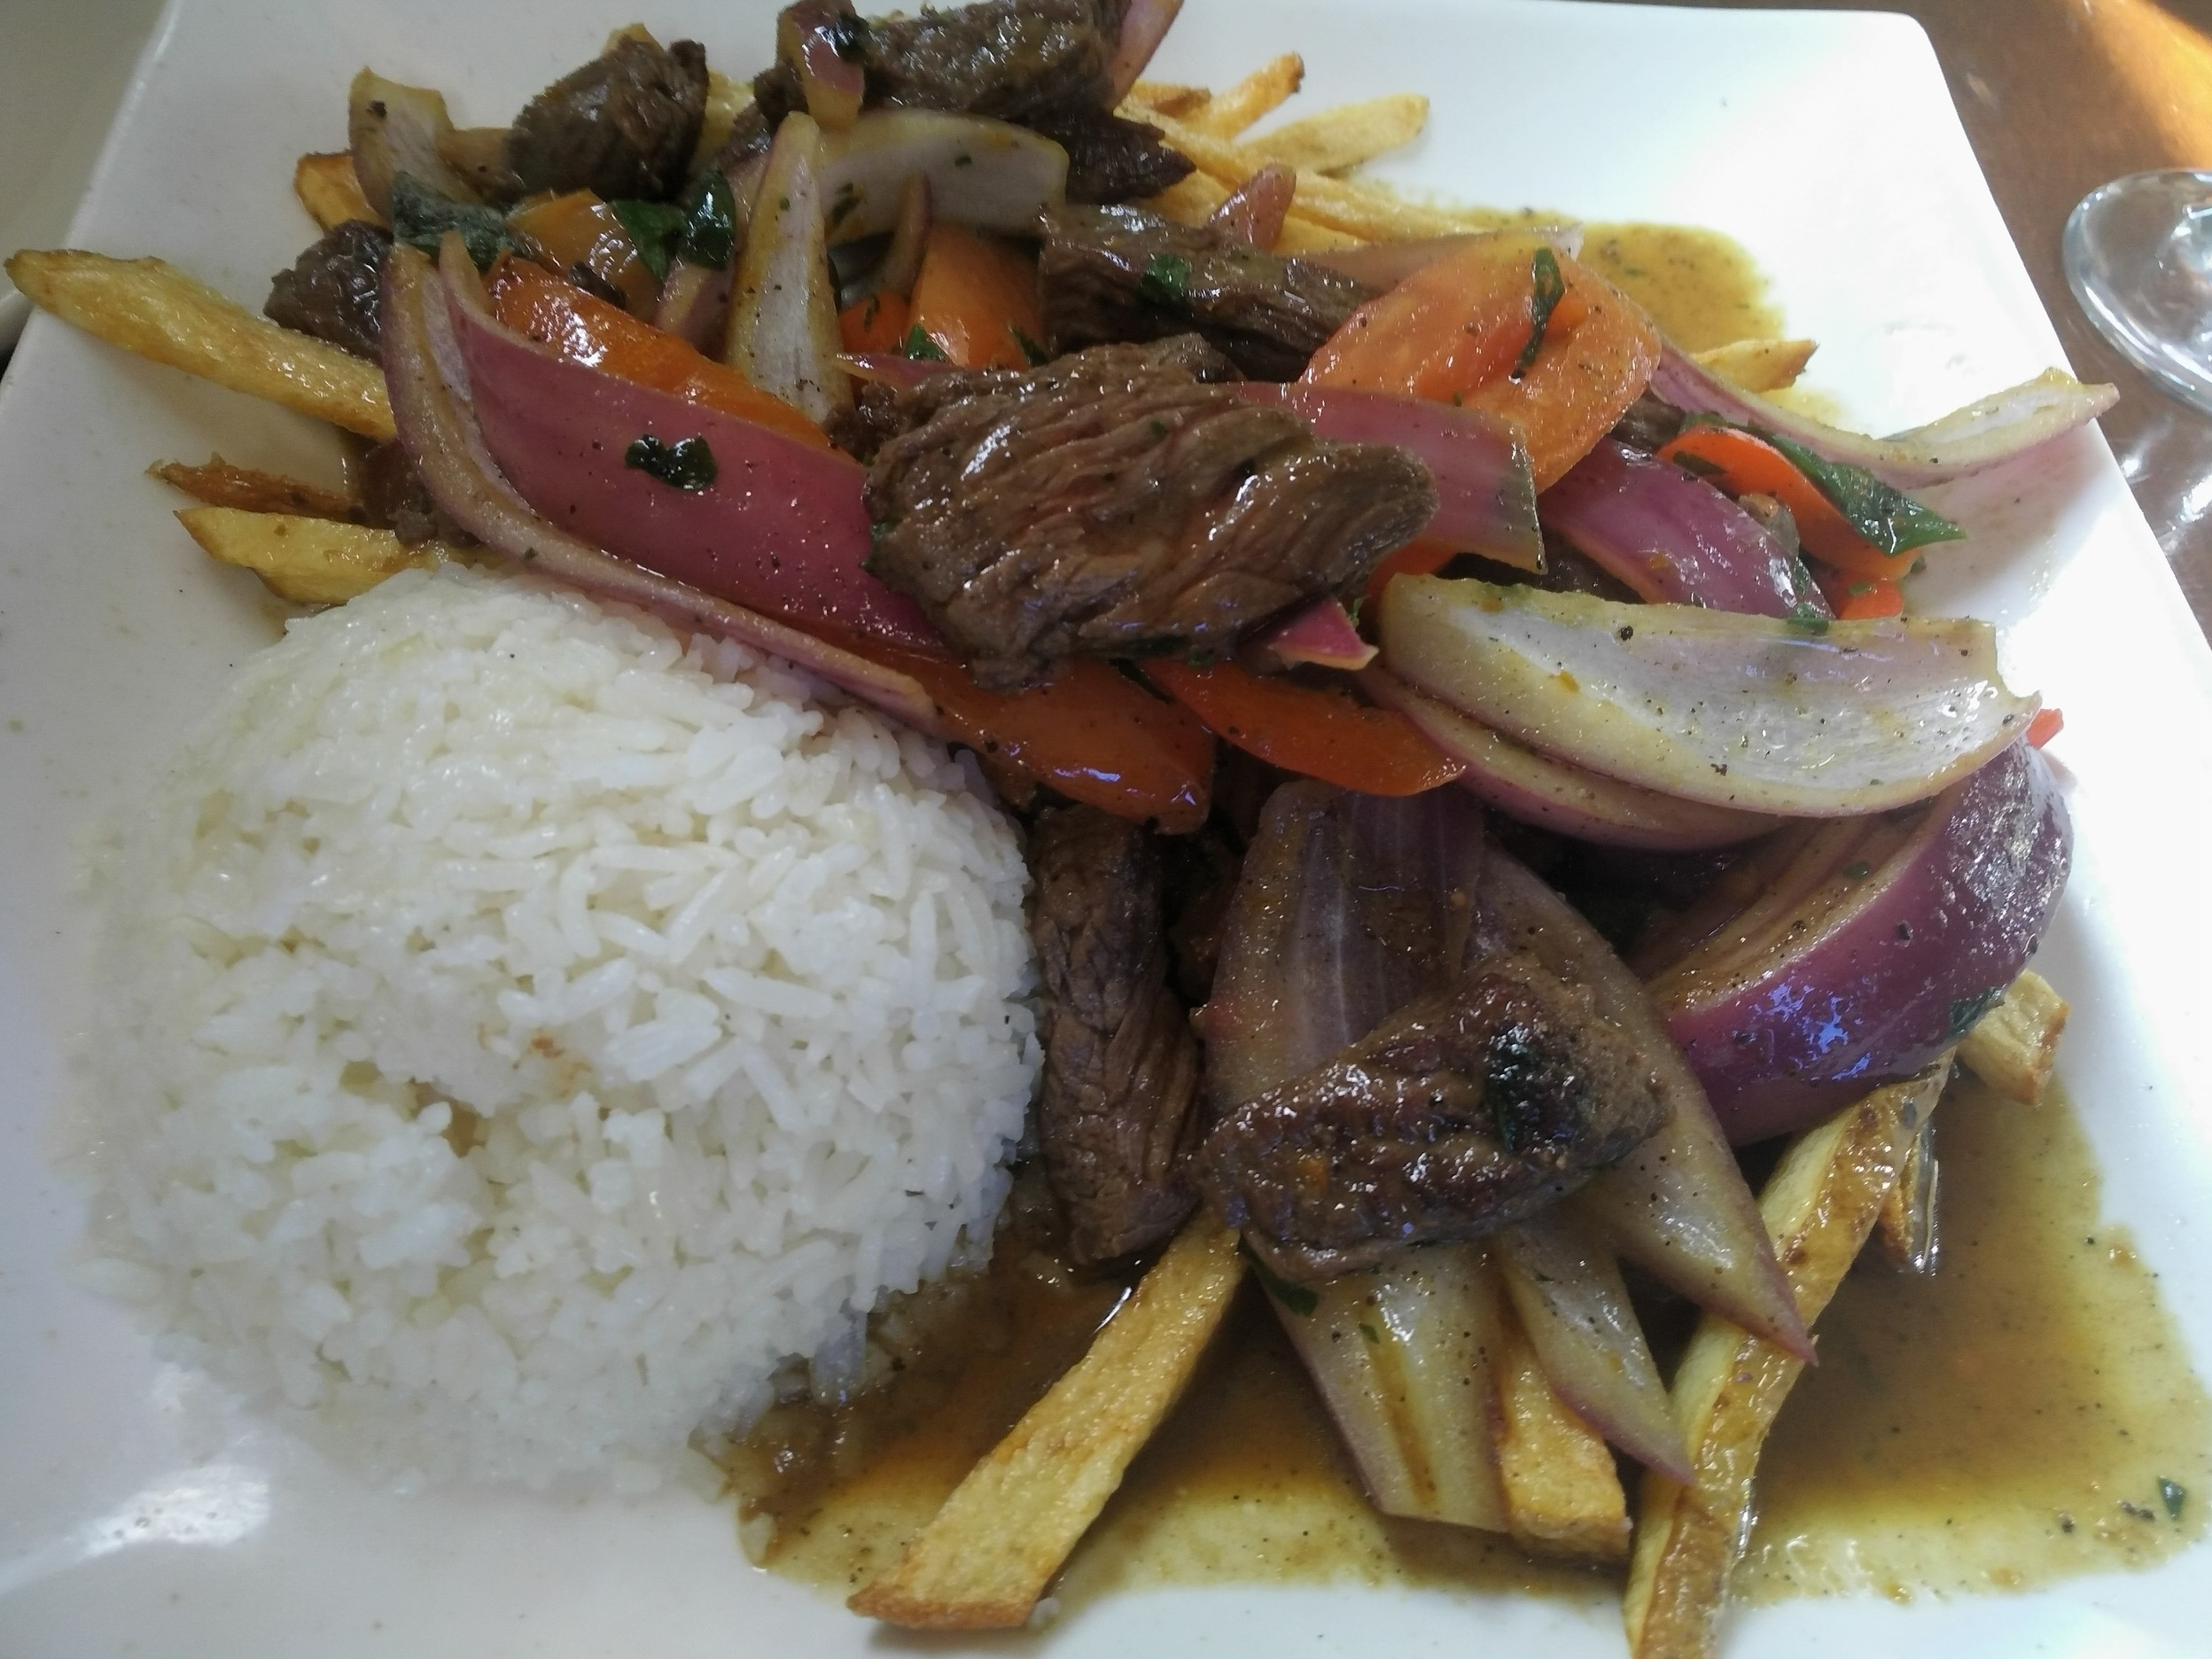 A+very+flavorful+meal%2C+chock+full+of+steak+and+french+fries+soaked+in+the+juices.